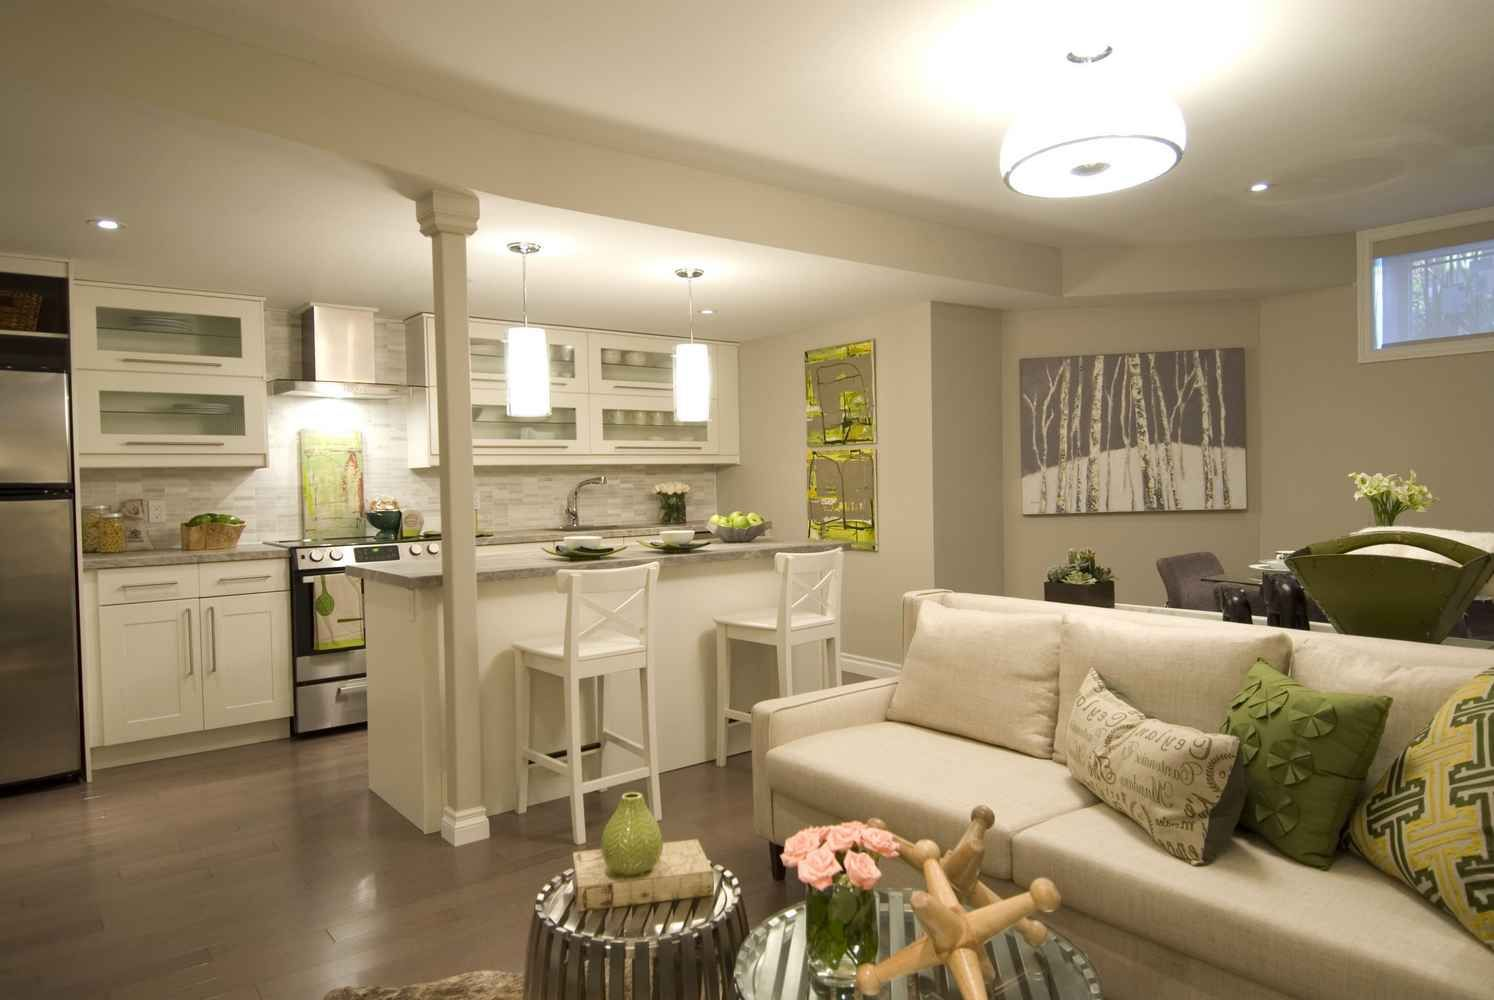 Image result for small open space kitchen living room ideas